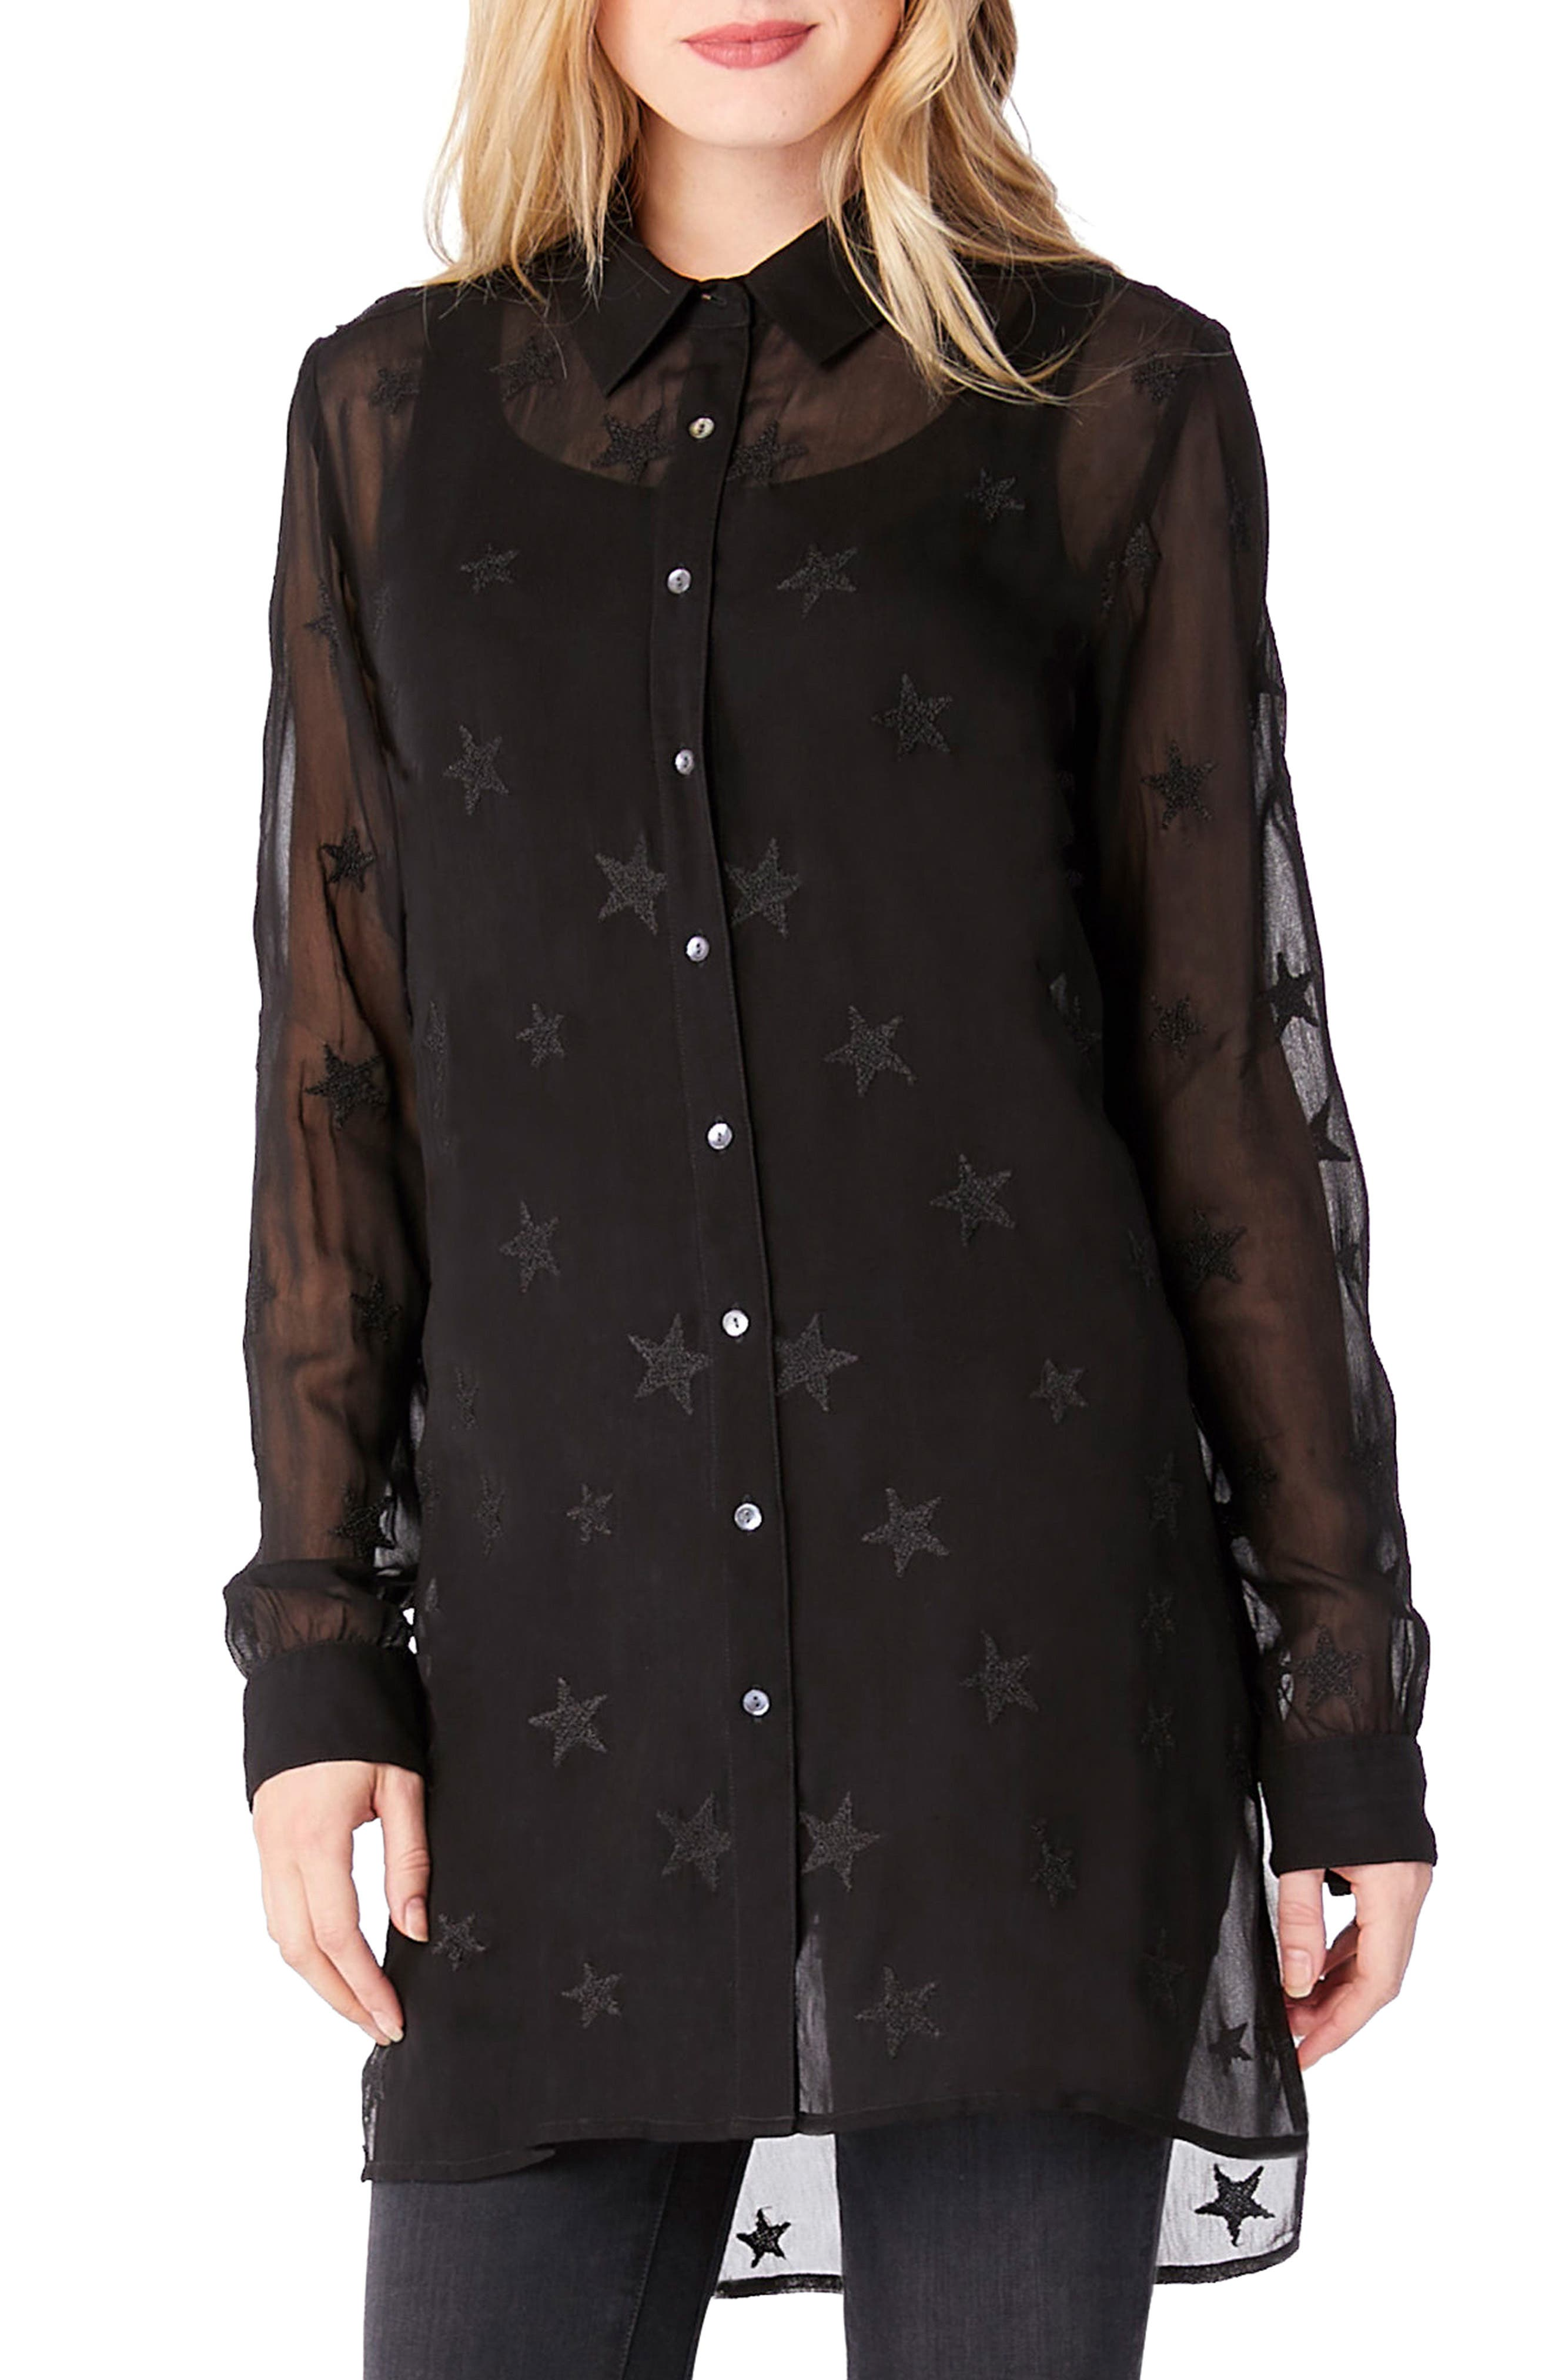 Star Embroidered Button-Up Shirt,                             Main thumbnail 1, color,                             001